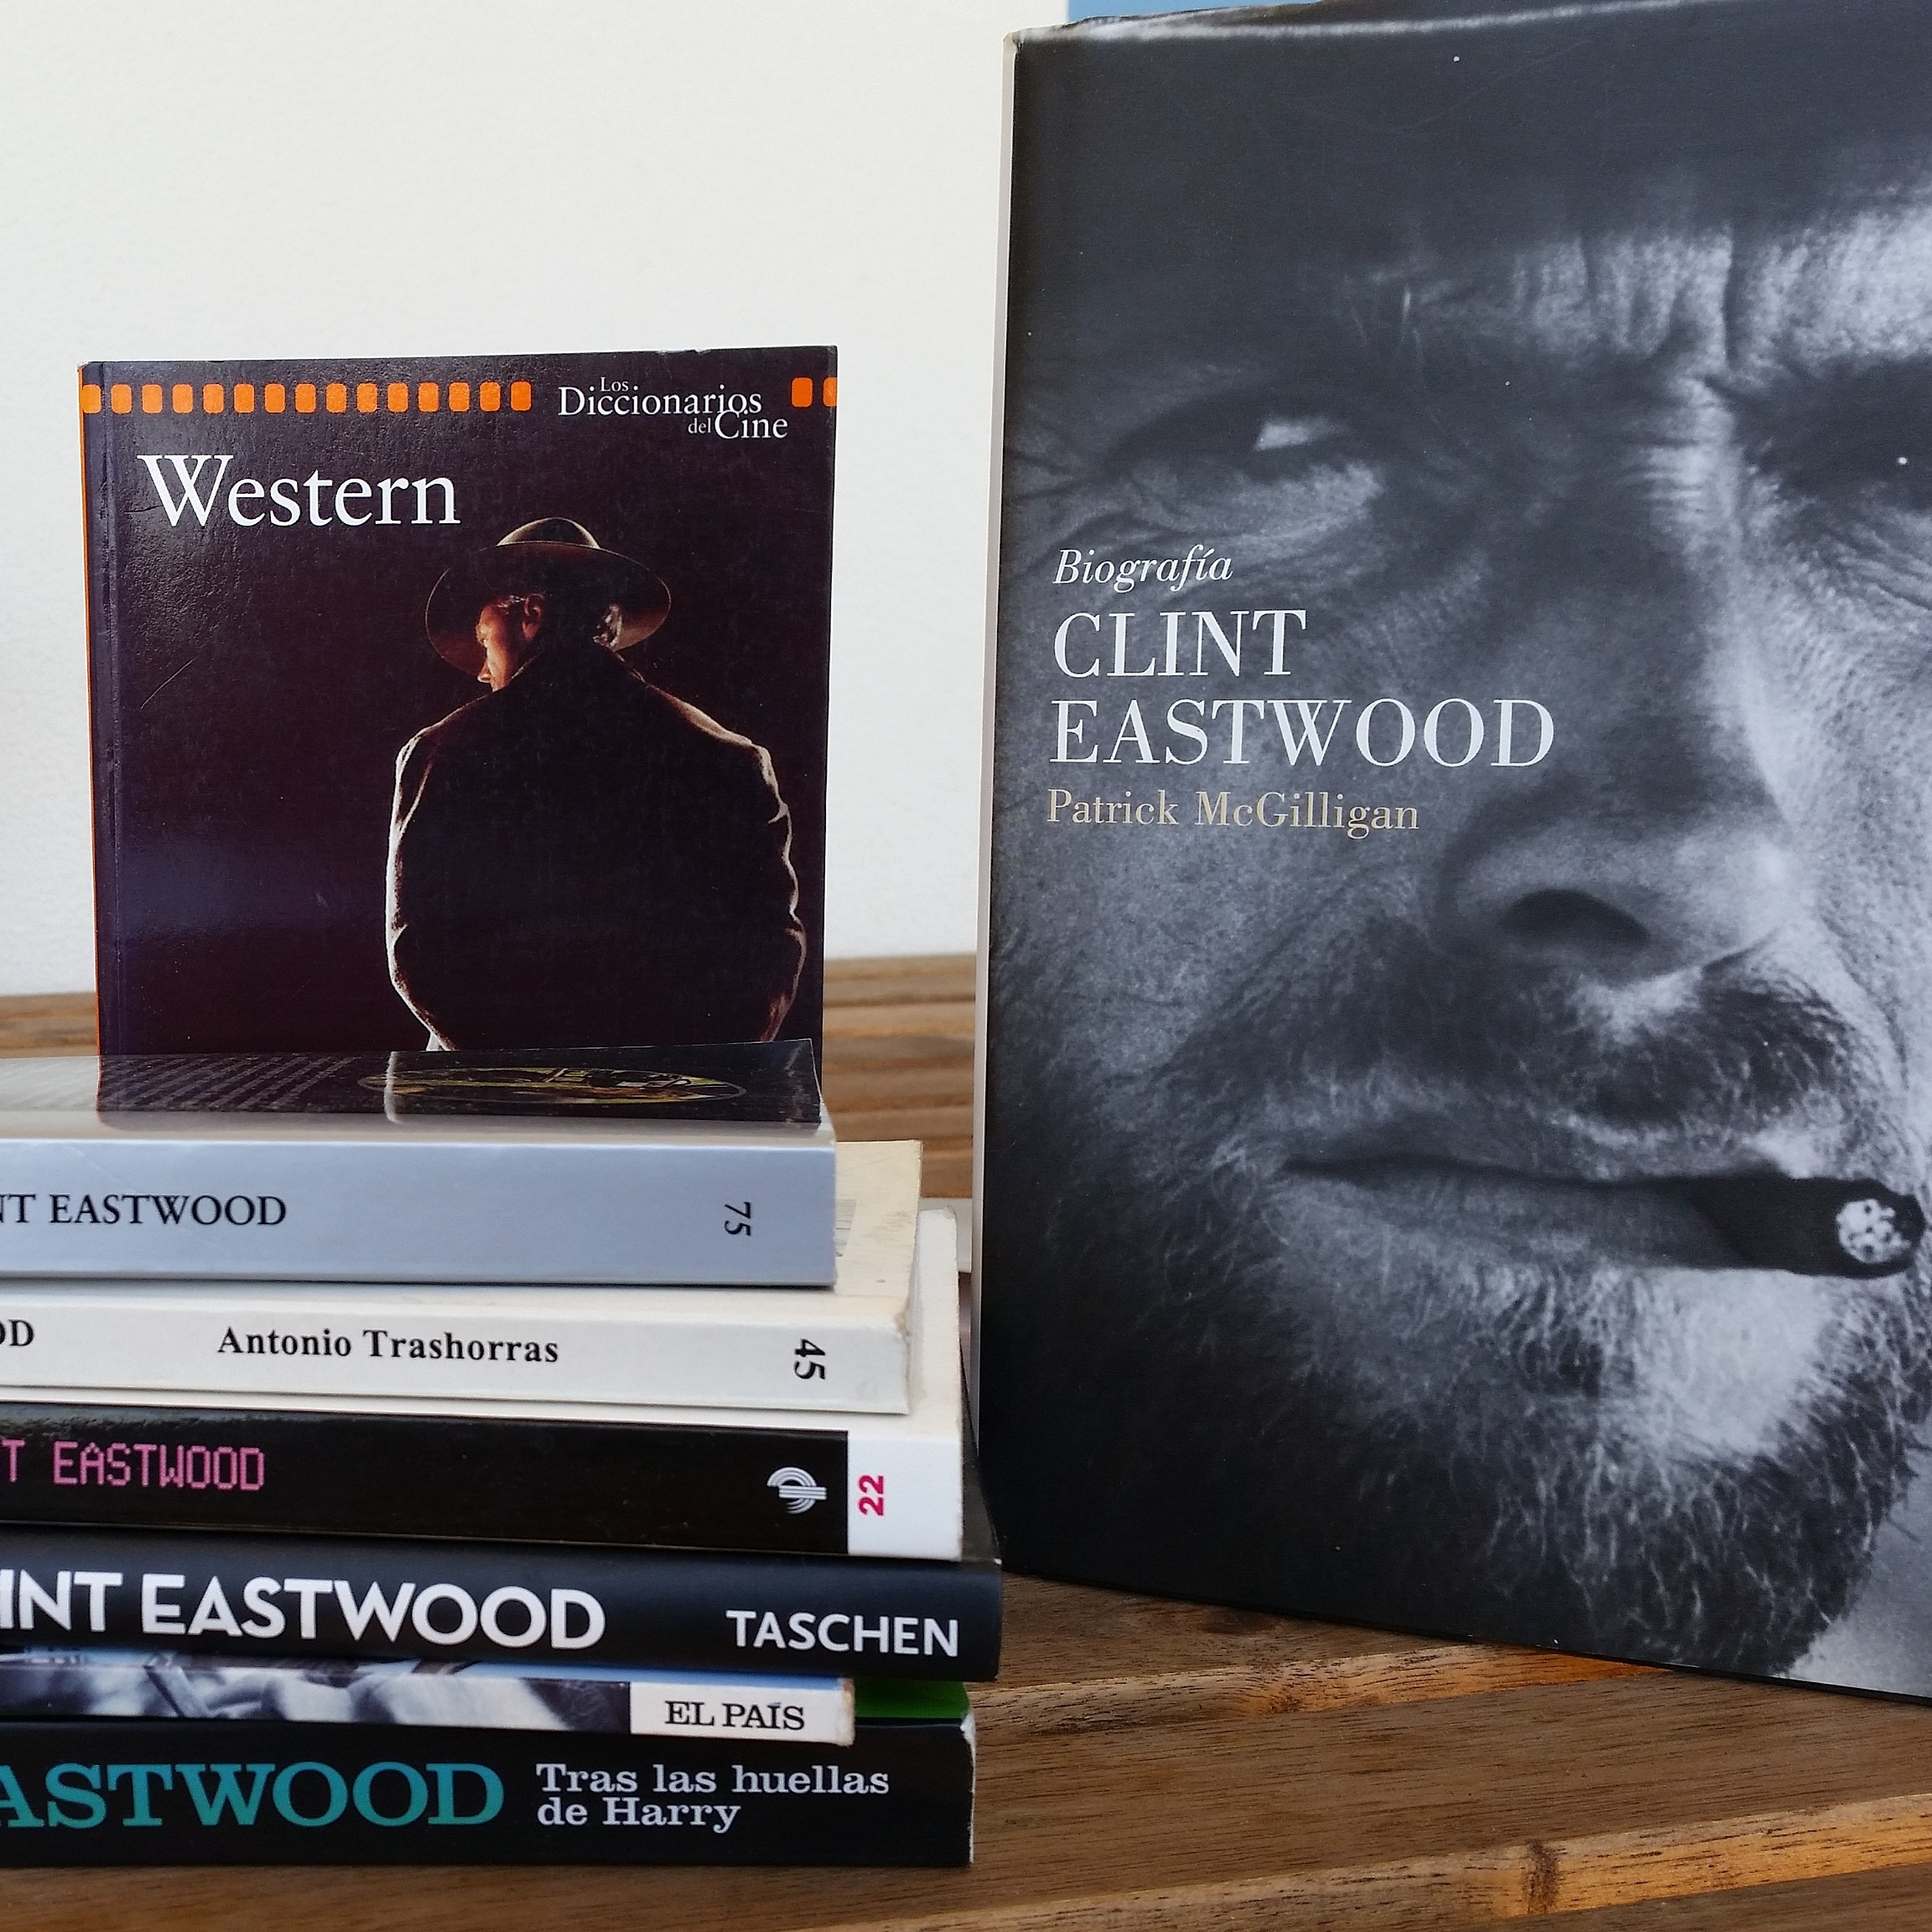 Clint Eastwood libros